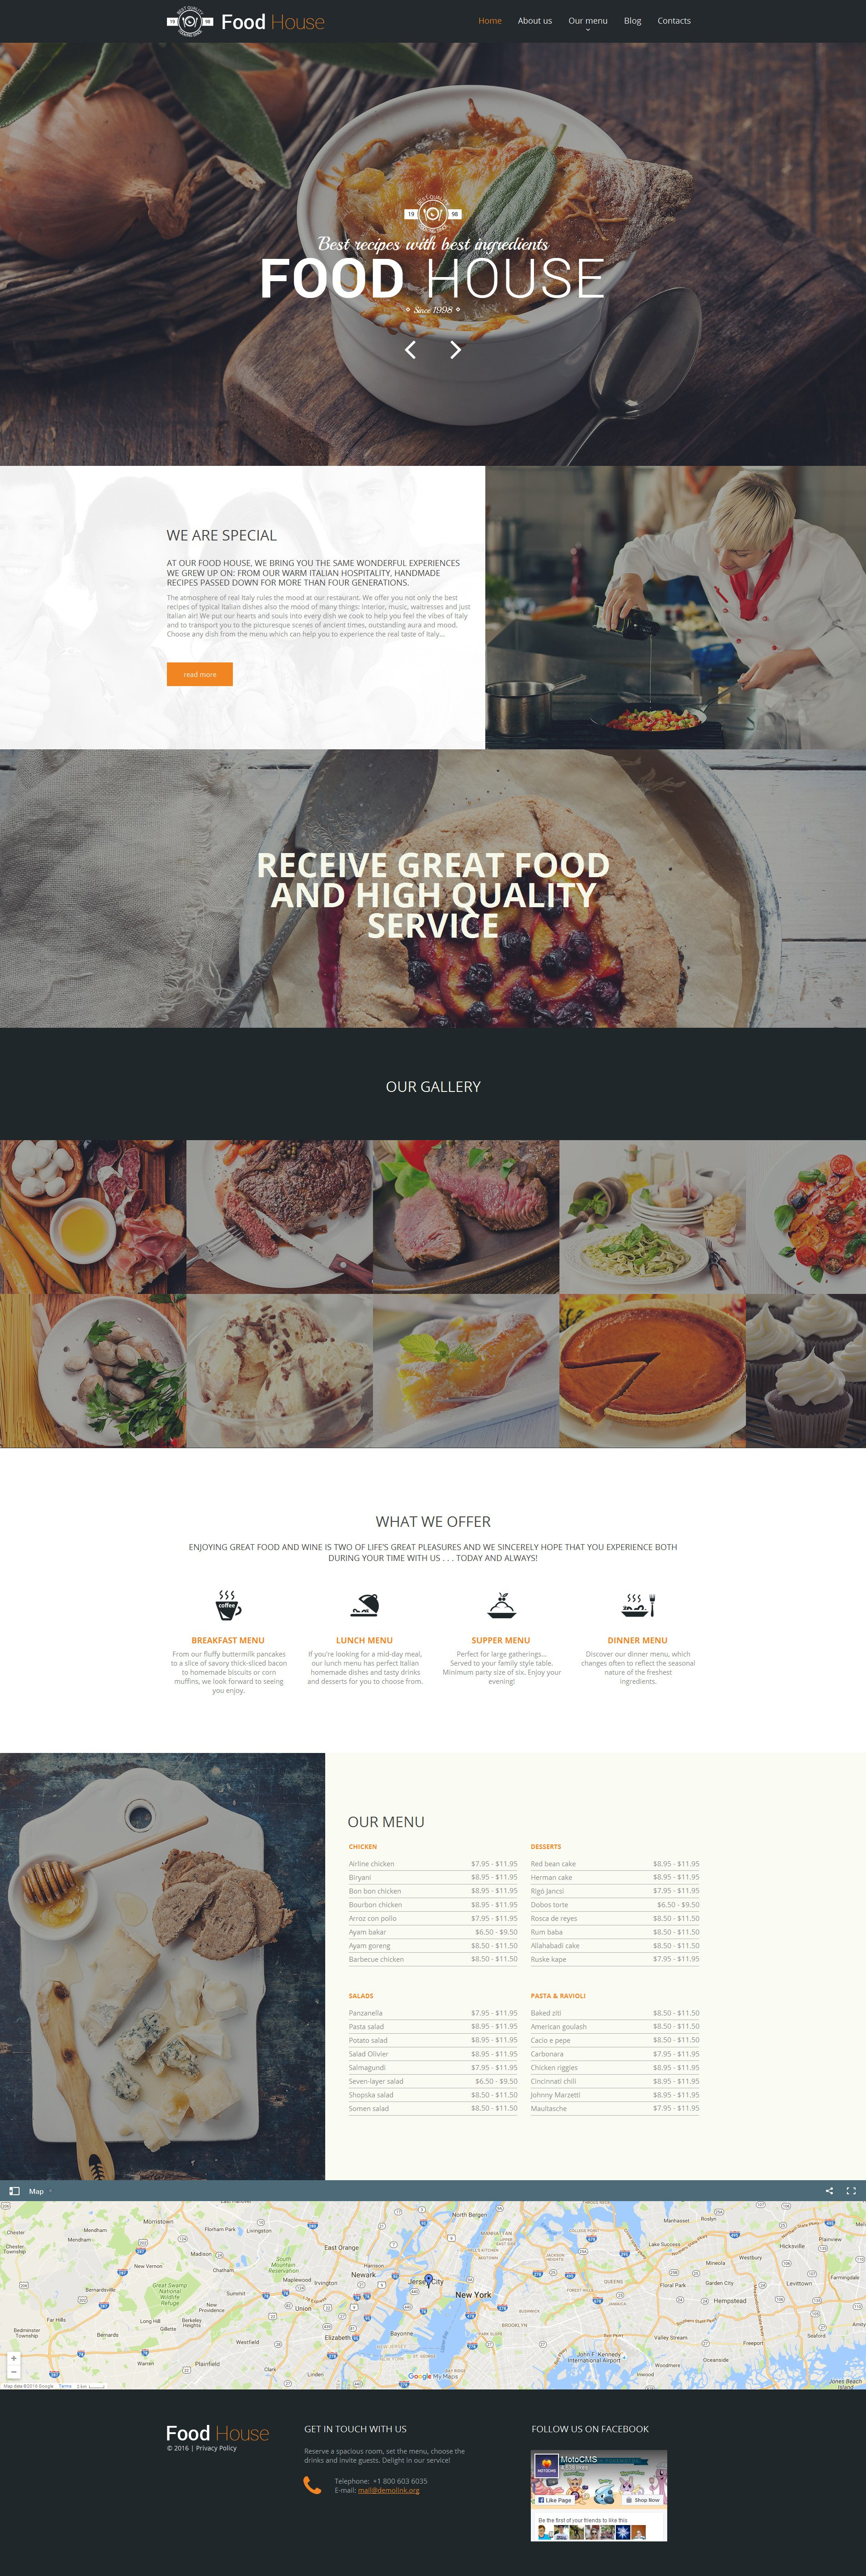 Food & Drink Moto CMS HTML Template